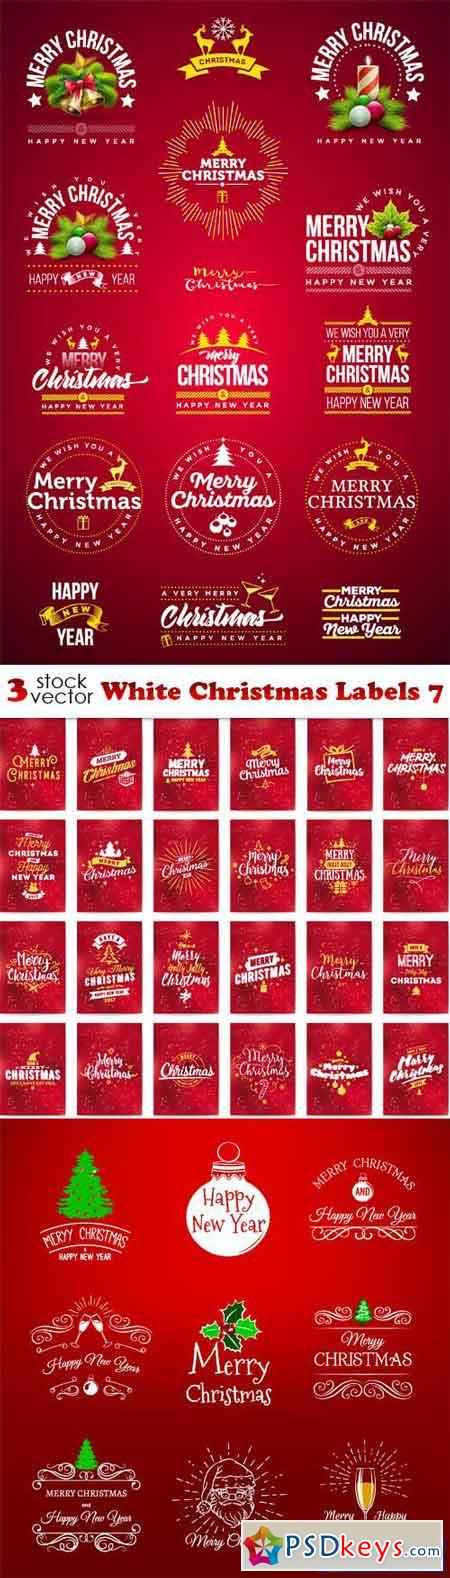 White Christmas Labels 7